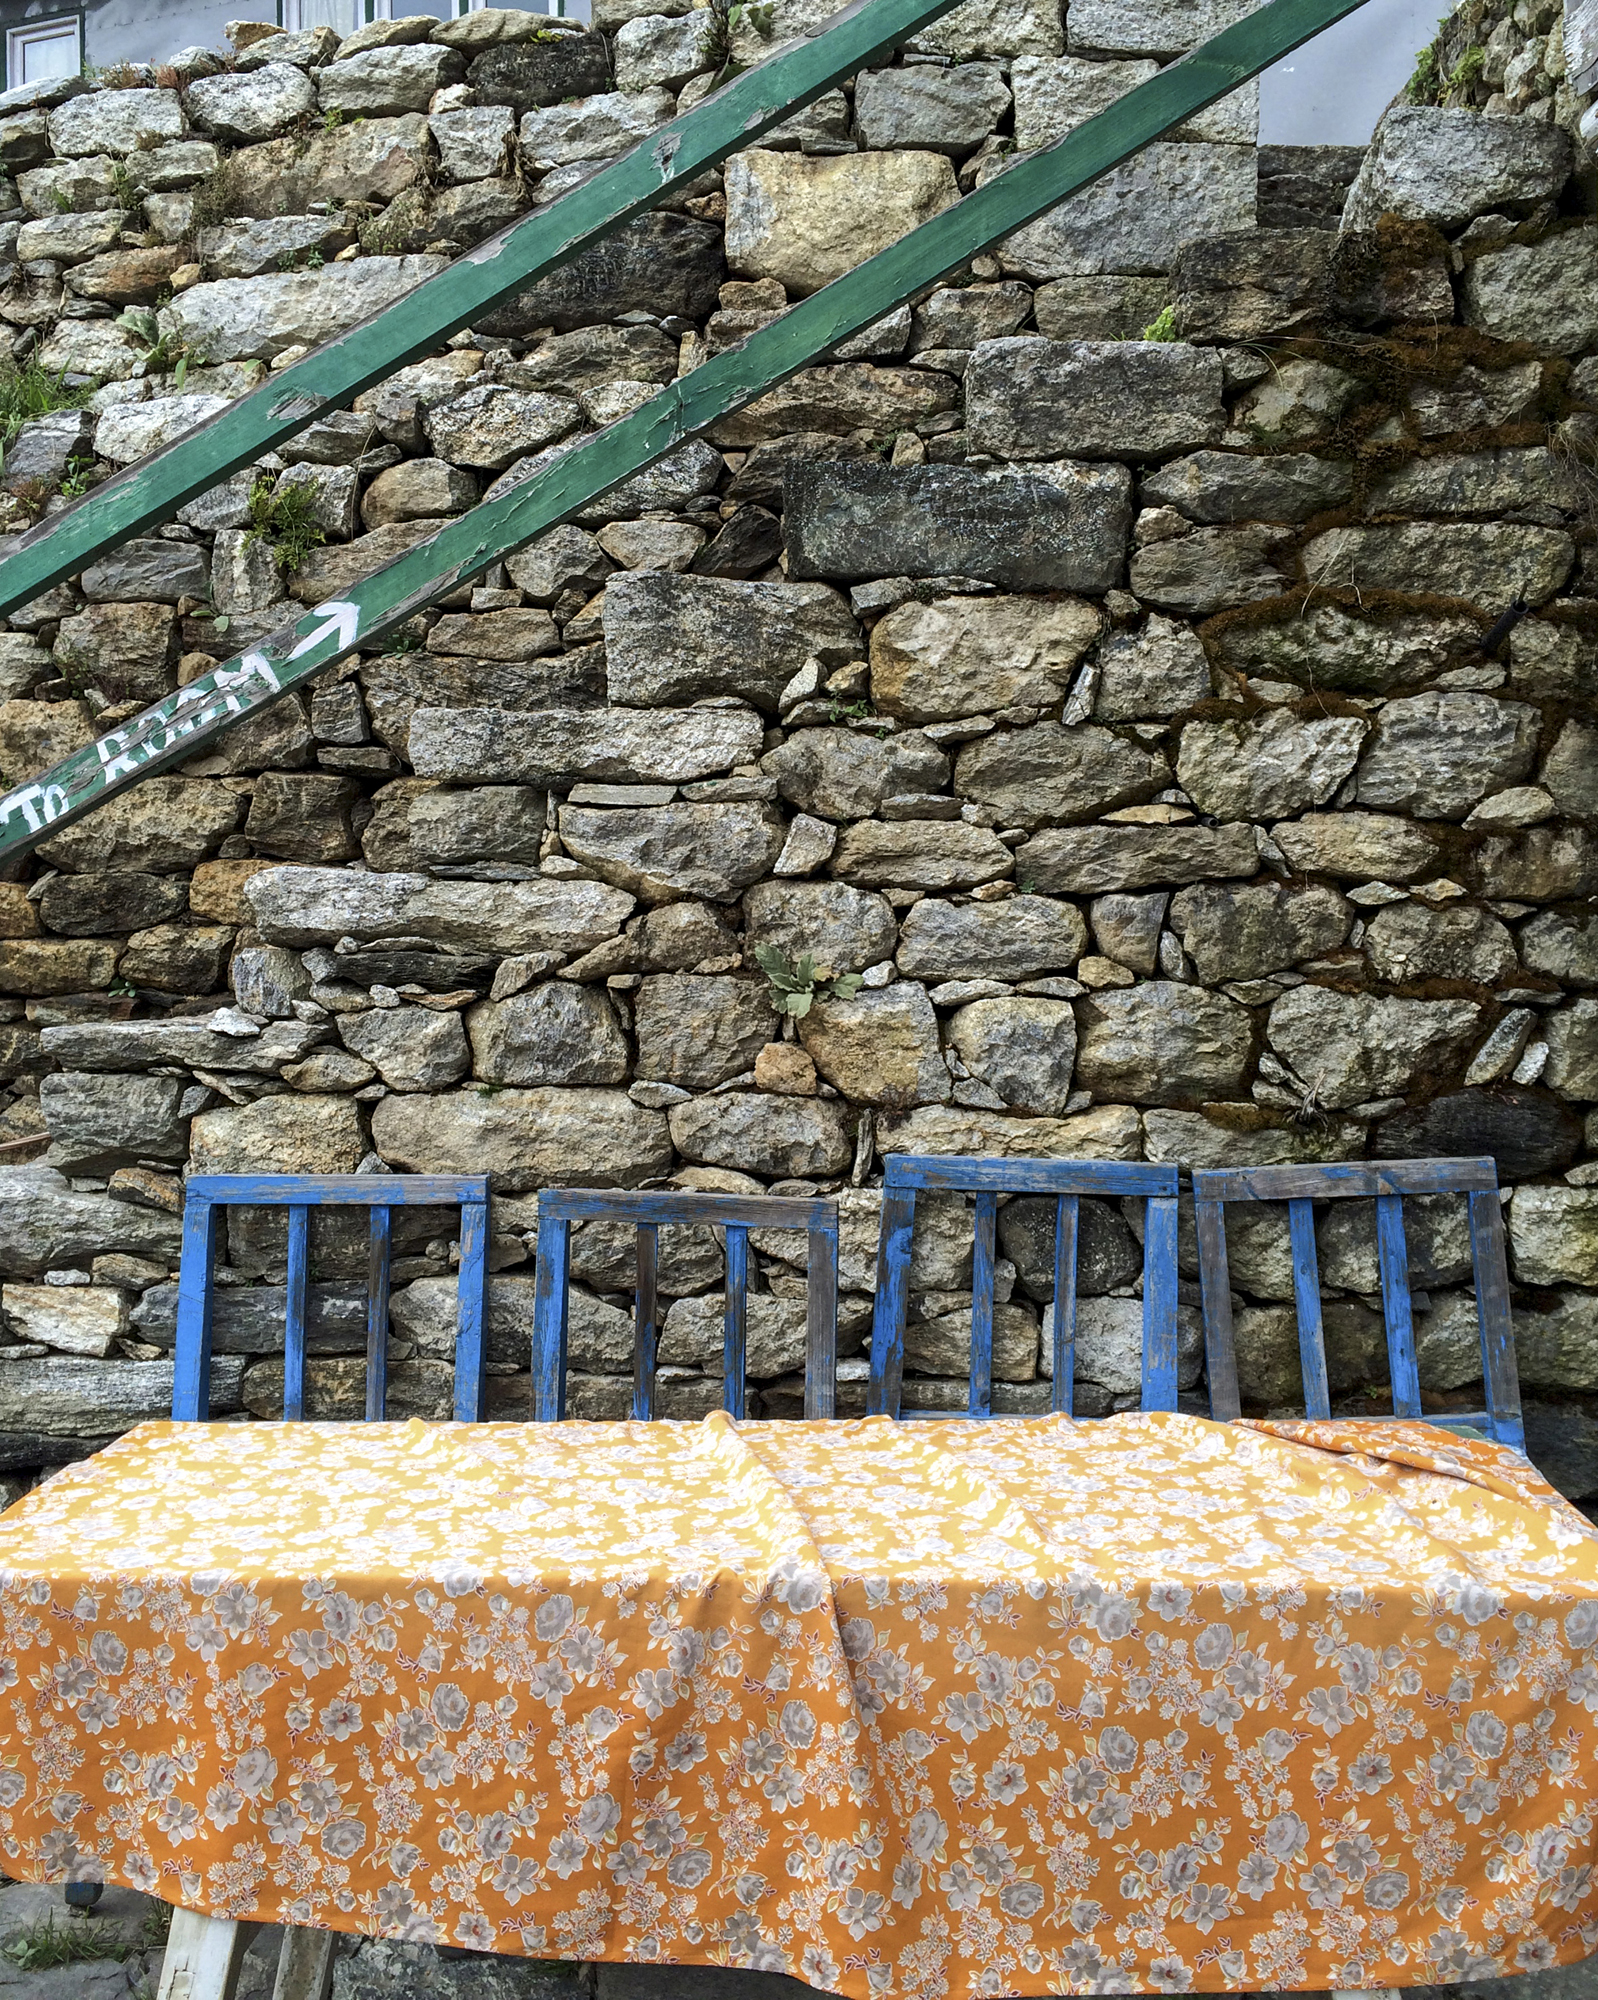 TABLECLOTH, Nepal